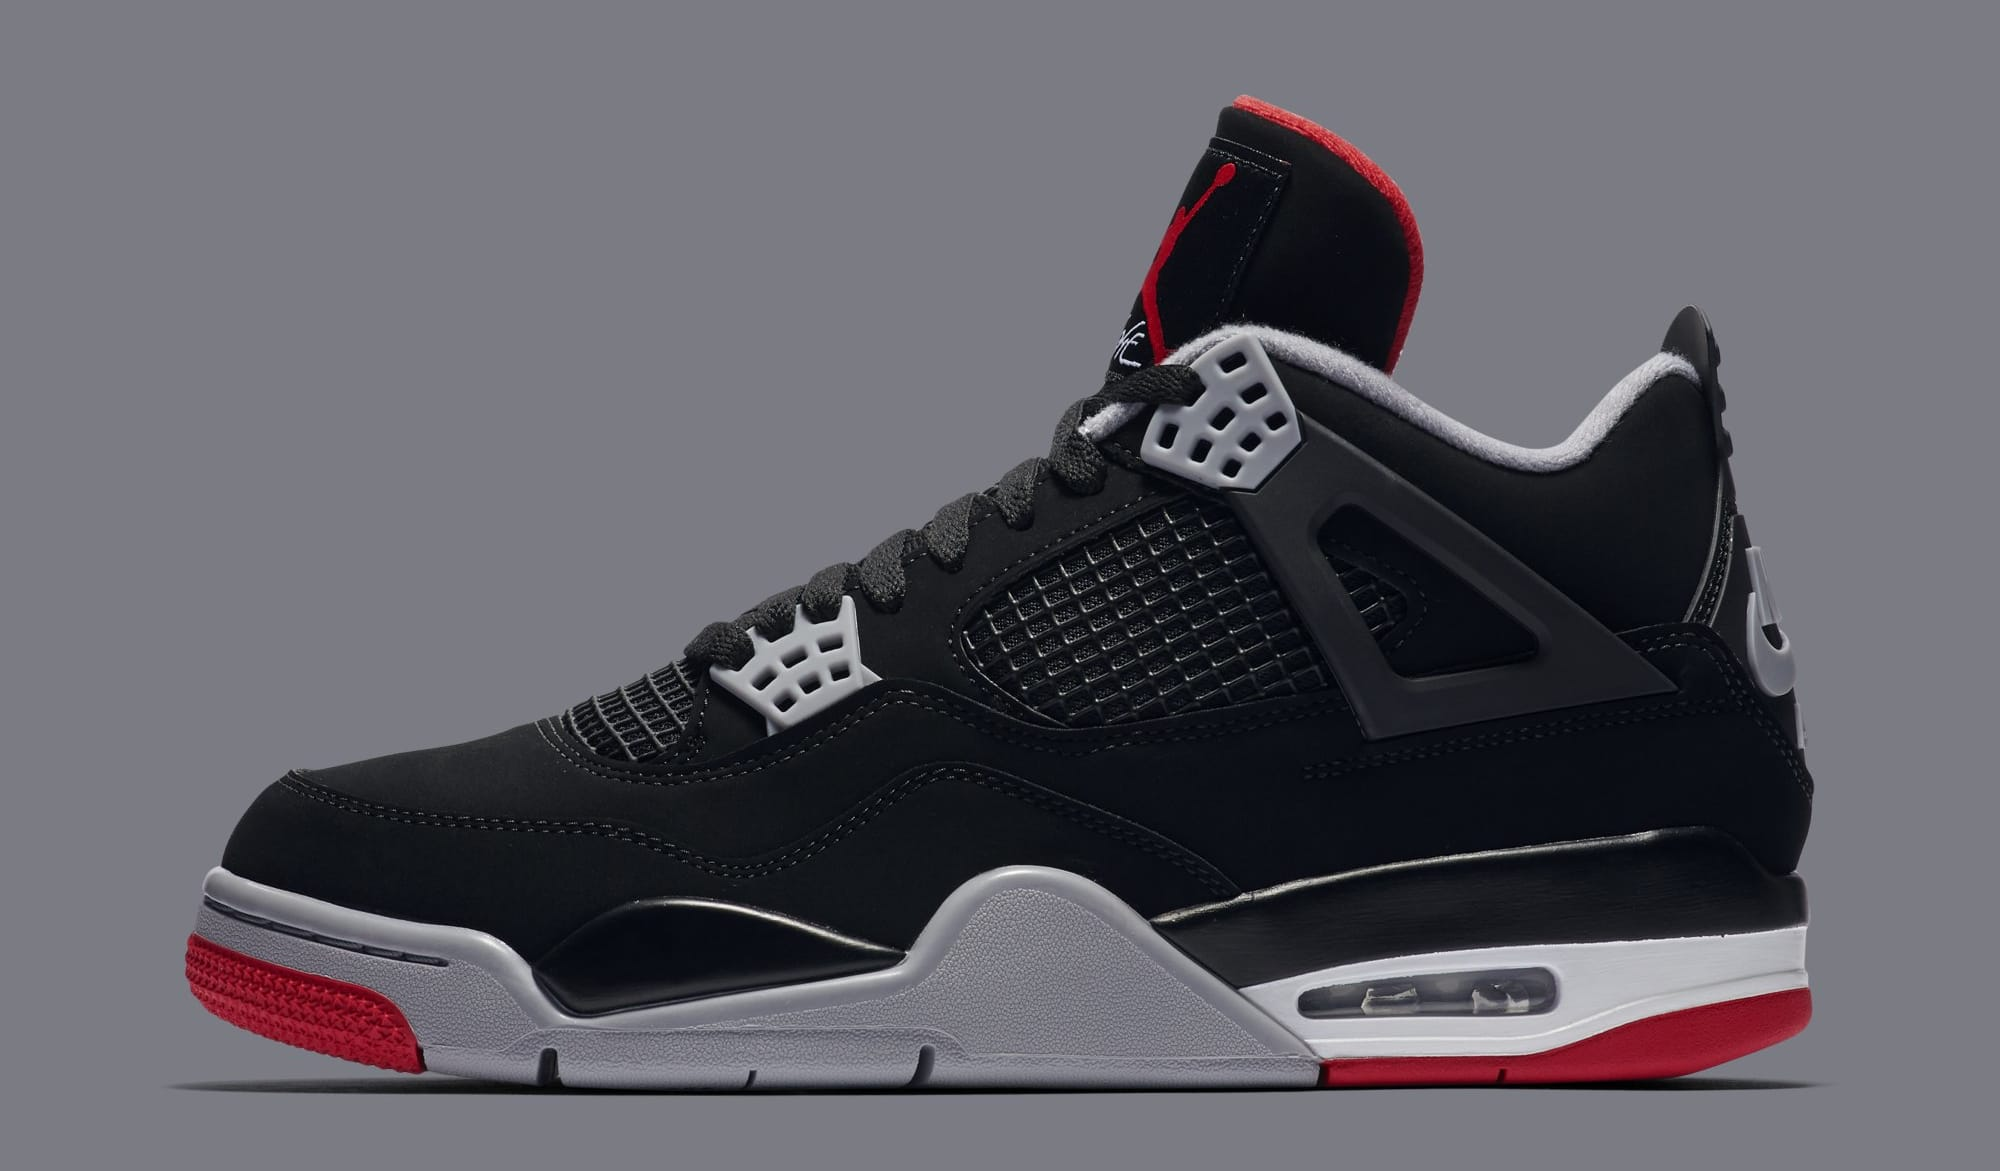 low priced bfb7e 80b67 Air Jordan 4  Bred  308497-060 (Lateral)